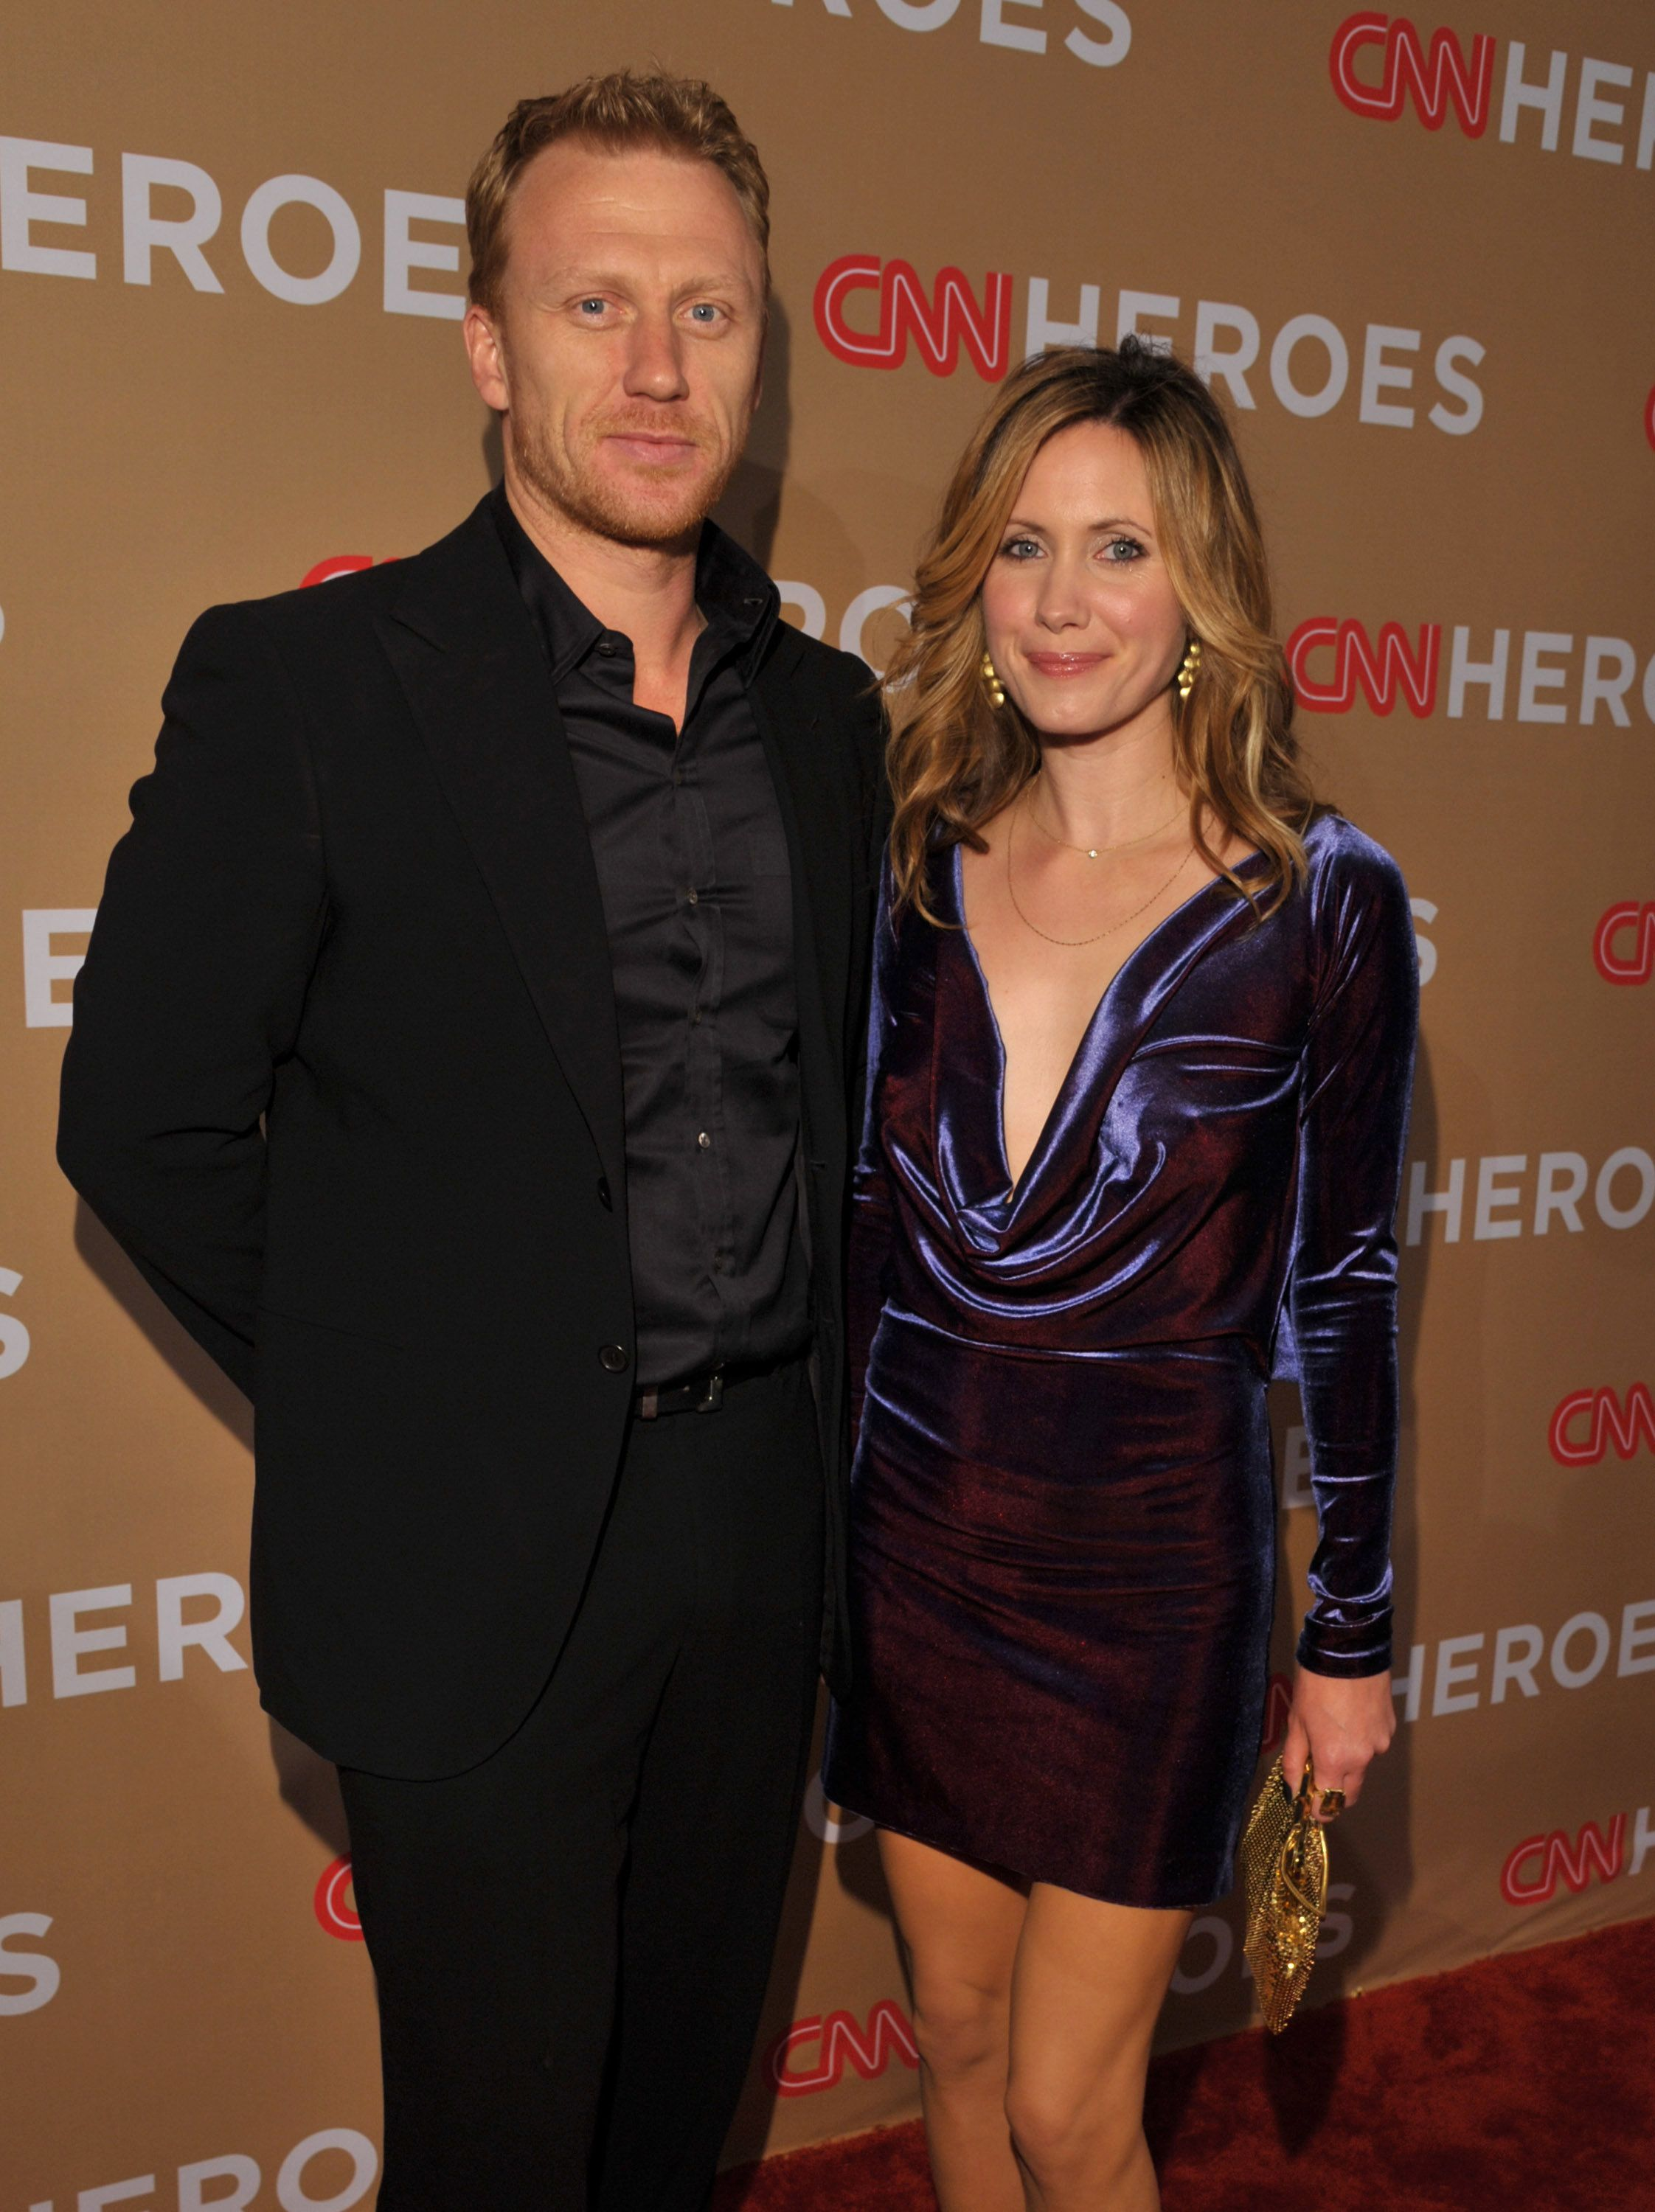 Kevin McKidd and his wife Jane at the 2010 CNN Heroes: An All-Star Tribute event.